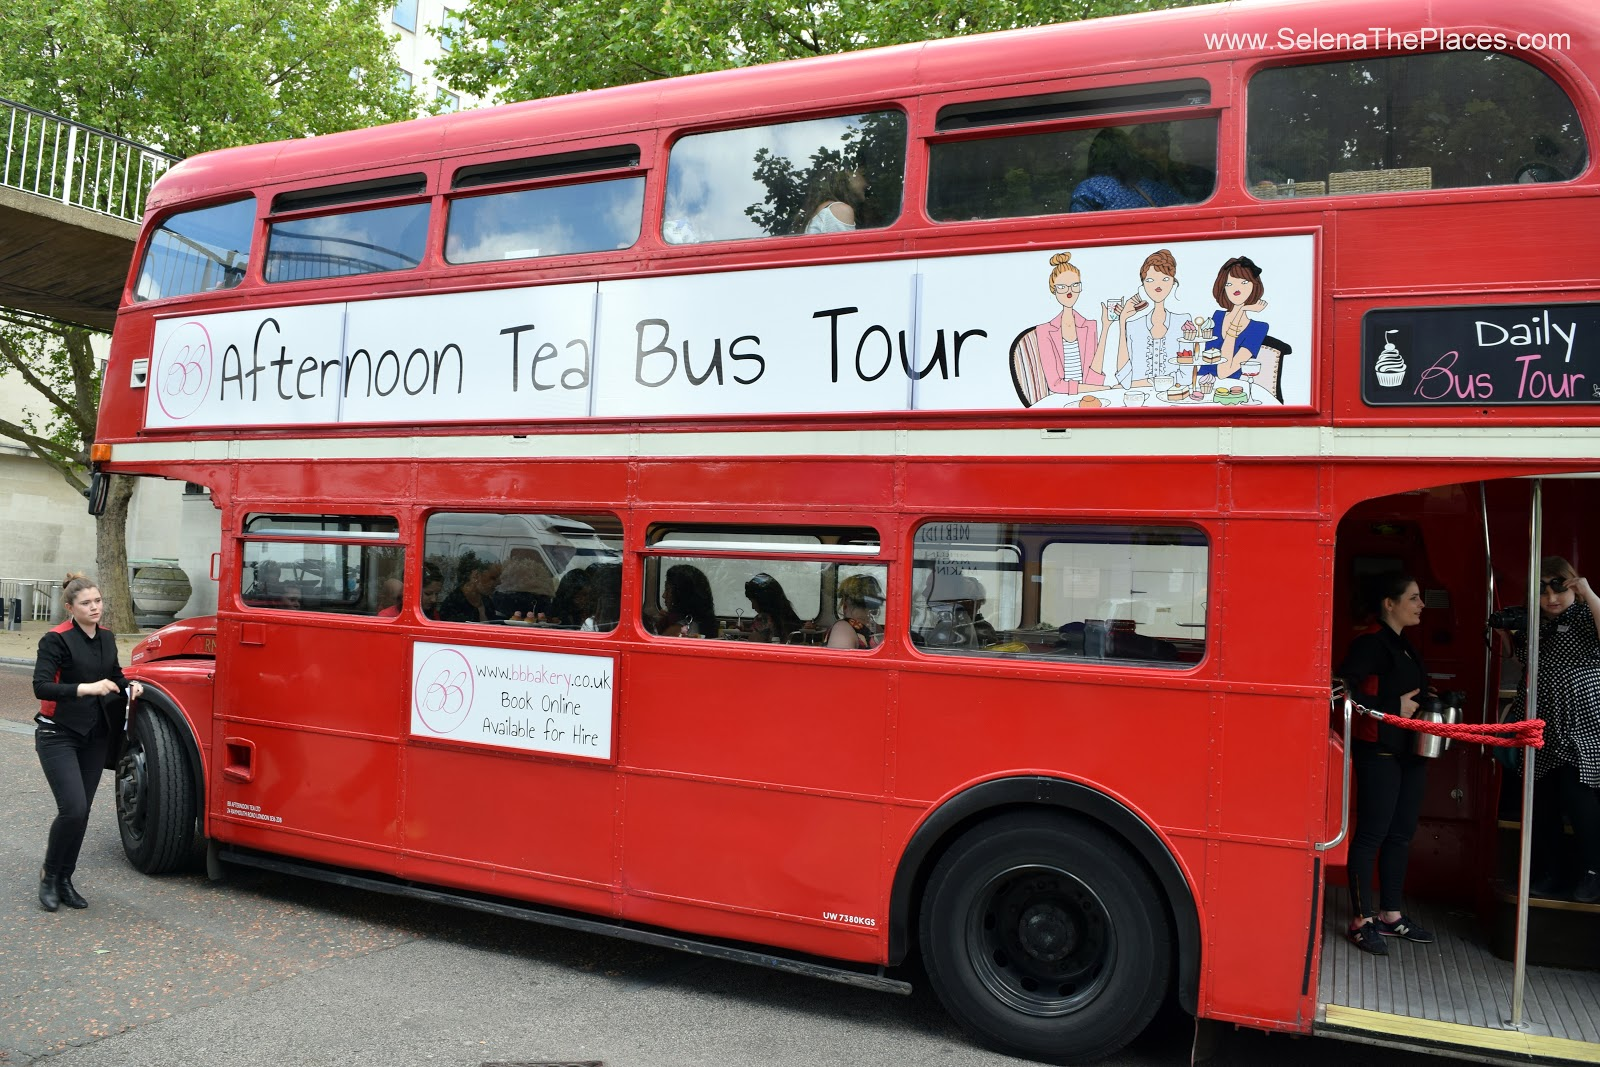 London Afternoon Tea Bus Tour